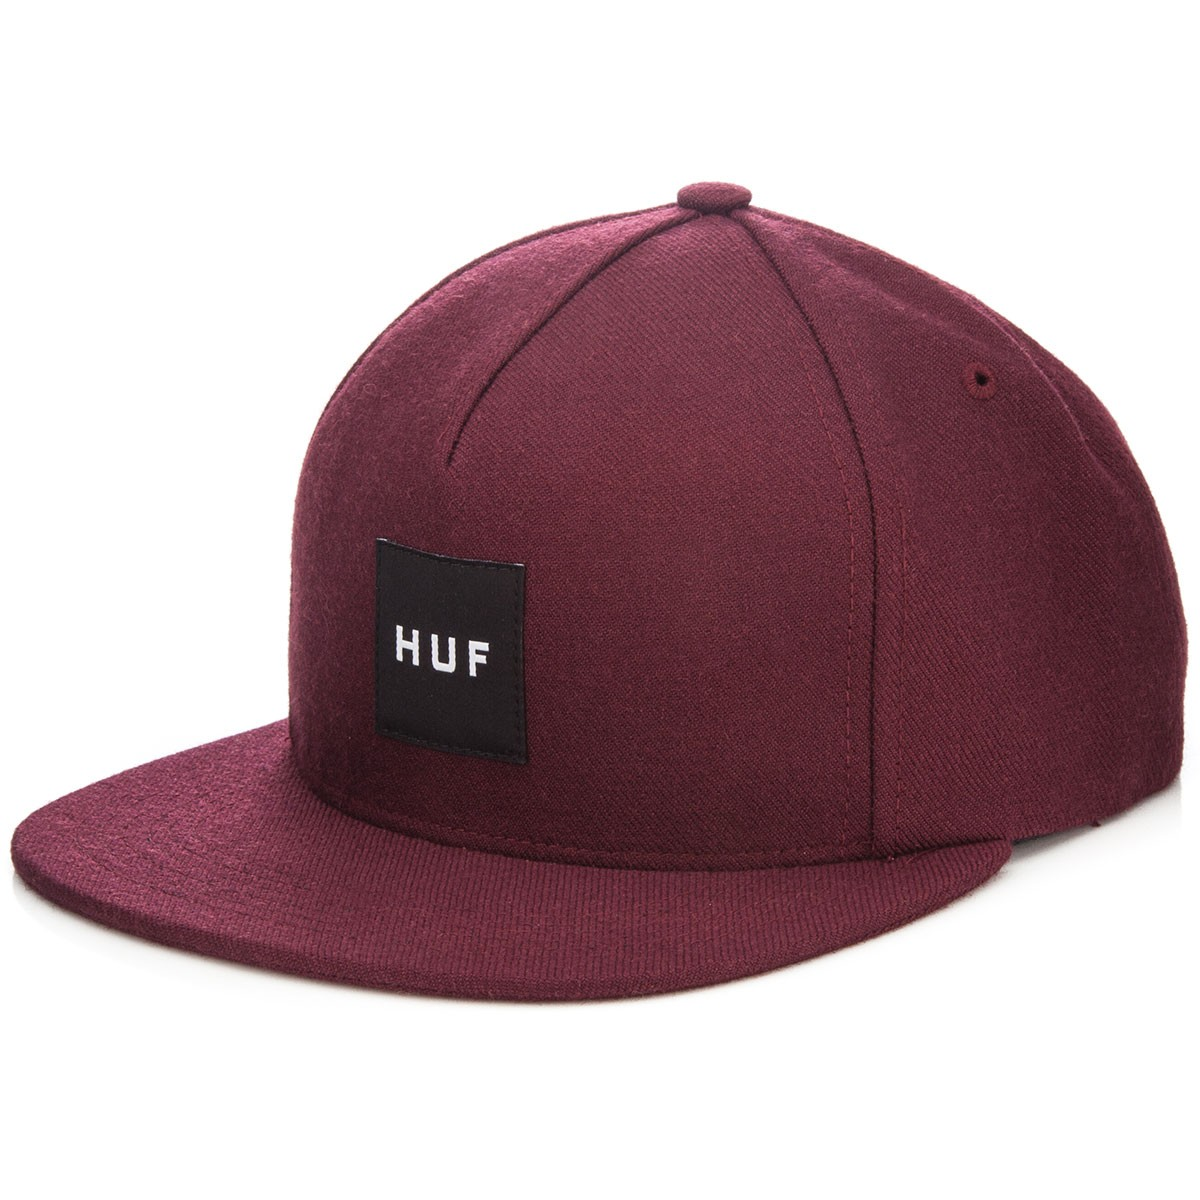 HUF Box Logo Snapback Hat - Wine